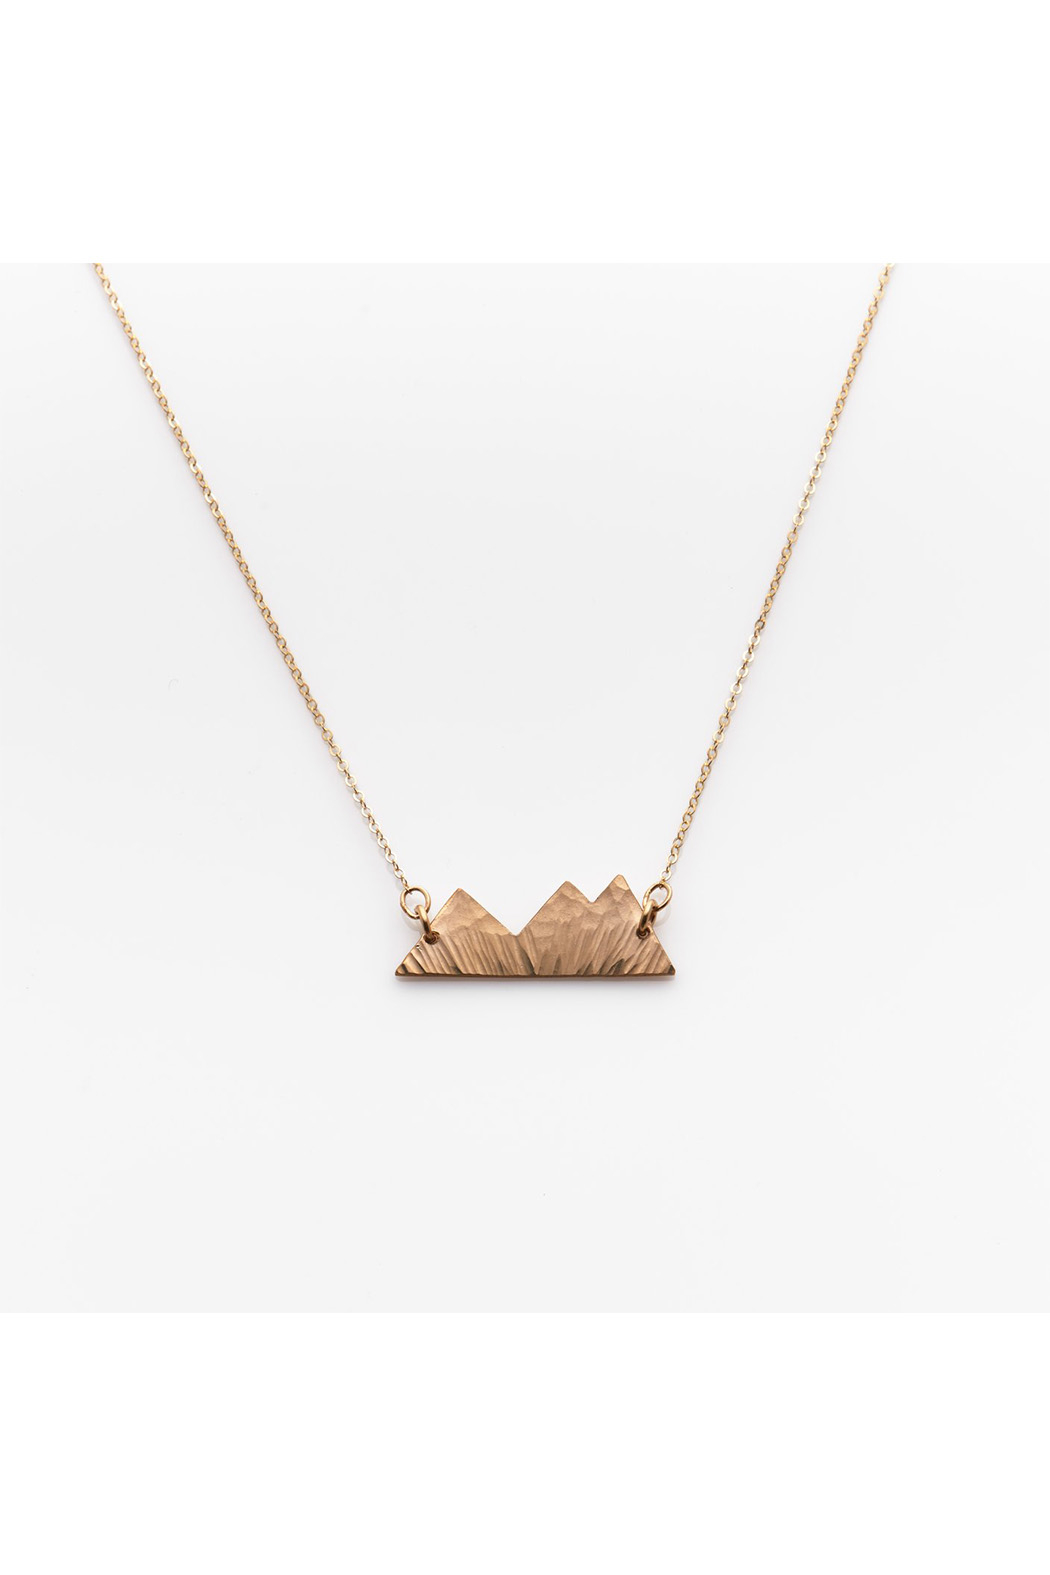 Nashelle Three Sisters Mountain Necklace - Main Image